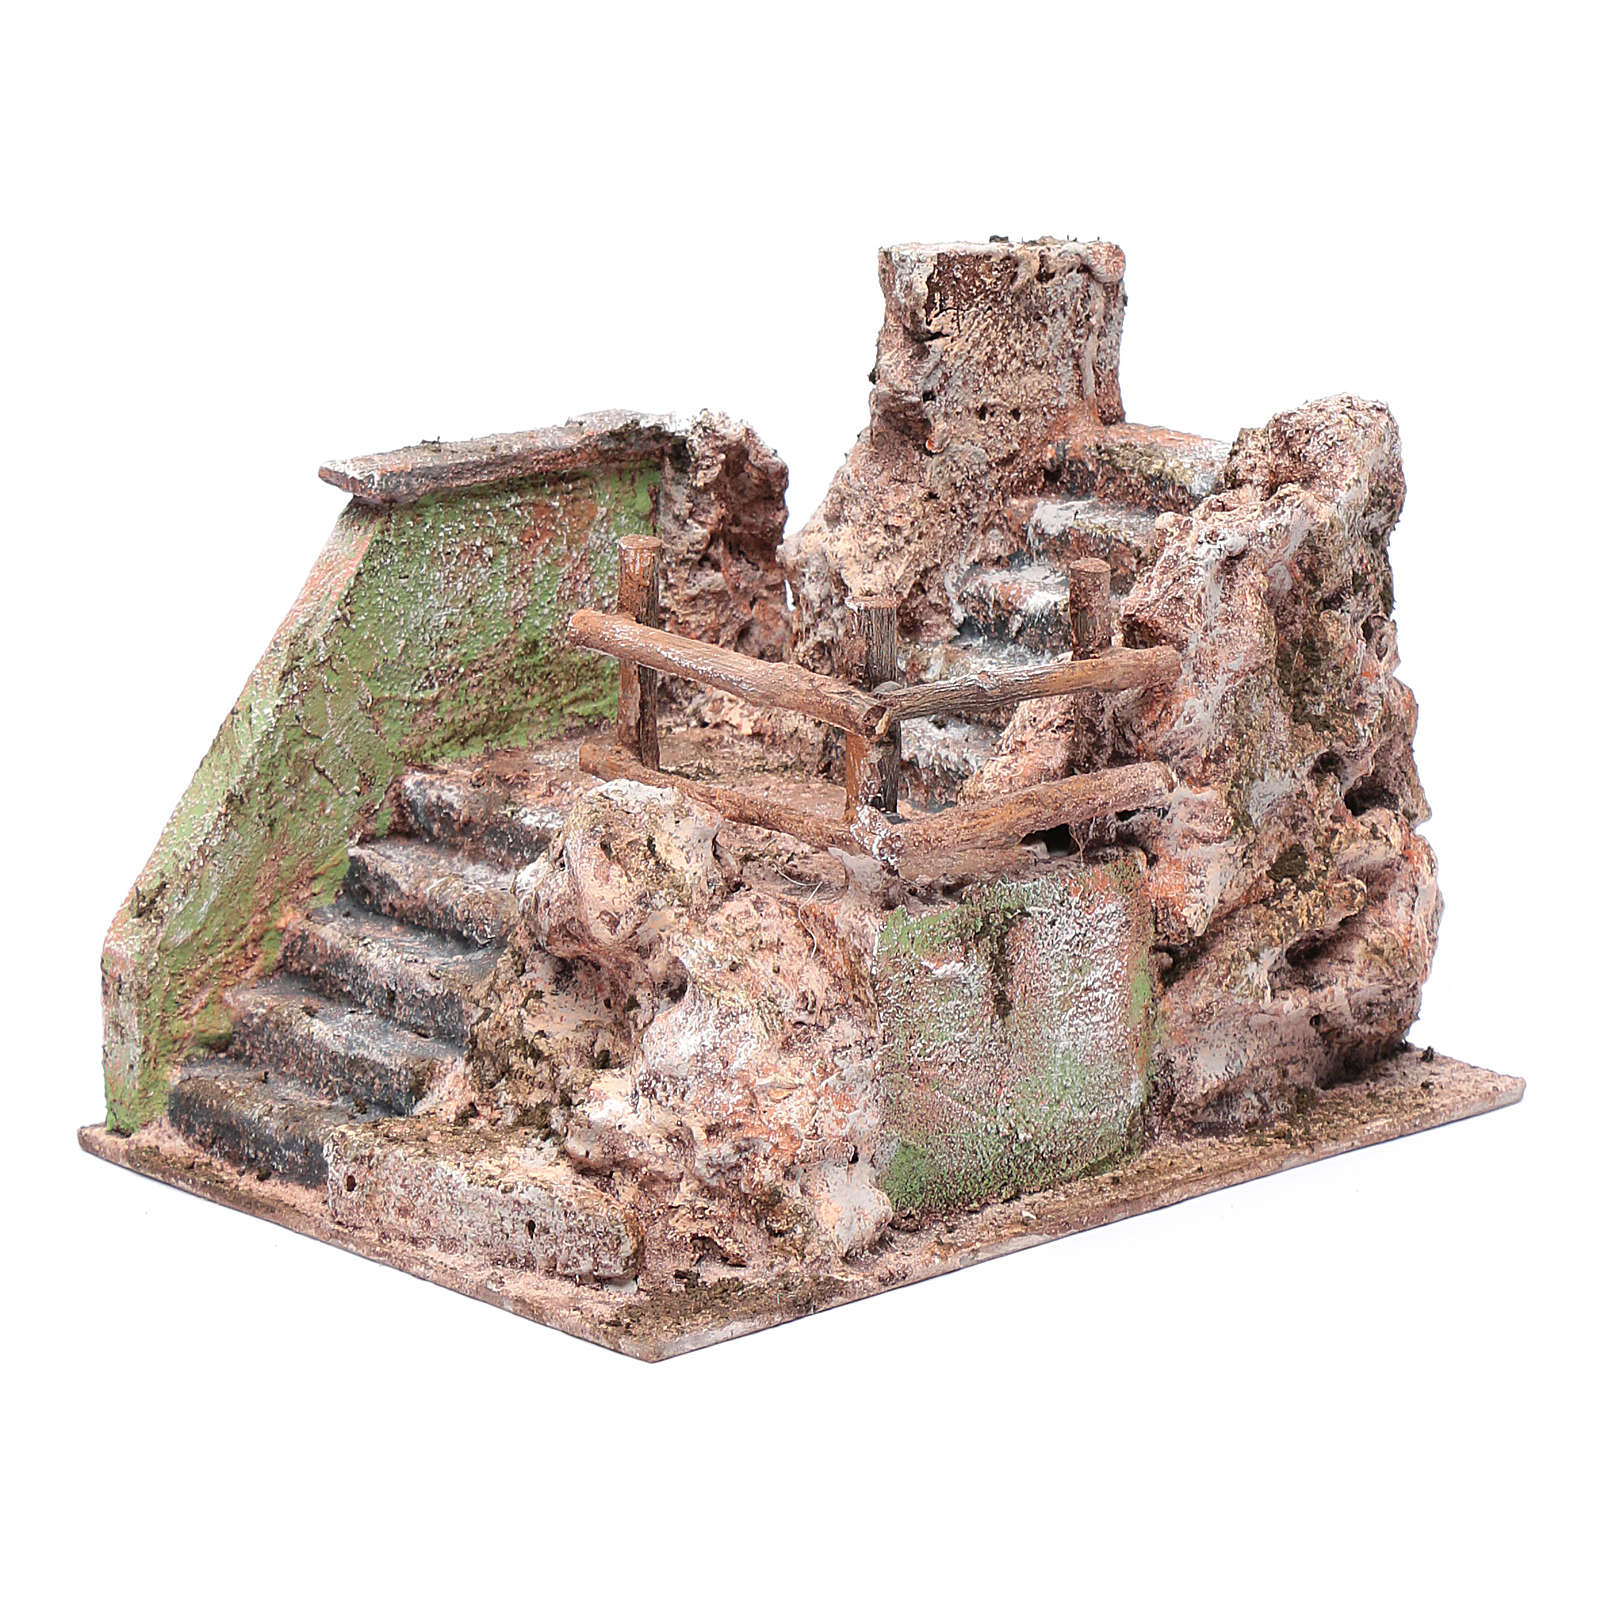 Nativity scene perched staircase 15x20x15 cm 4